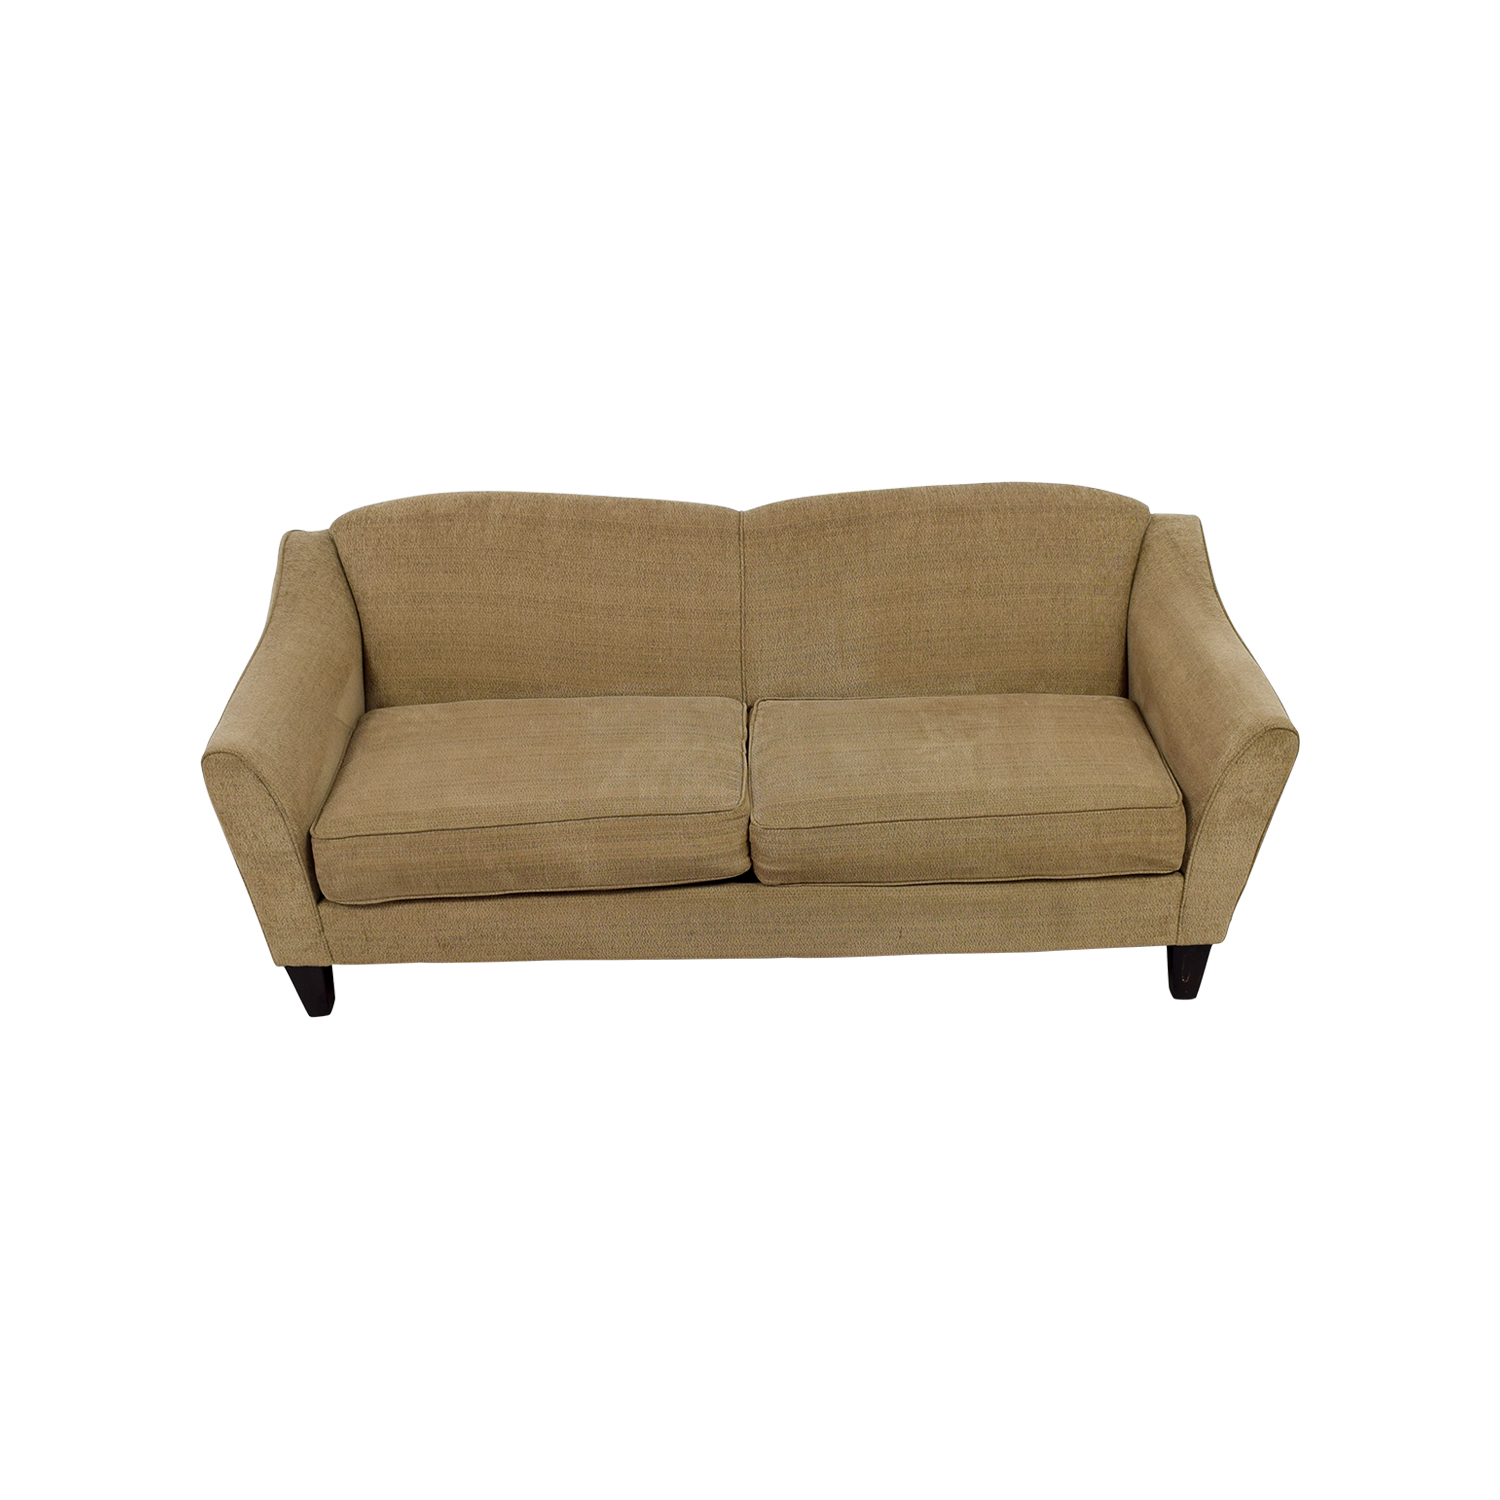 43 Off Bob S Furniture Bob S Furniture Tessa Beige Sofa